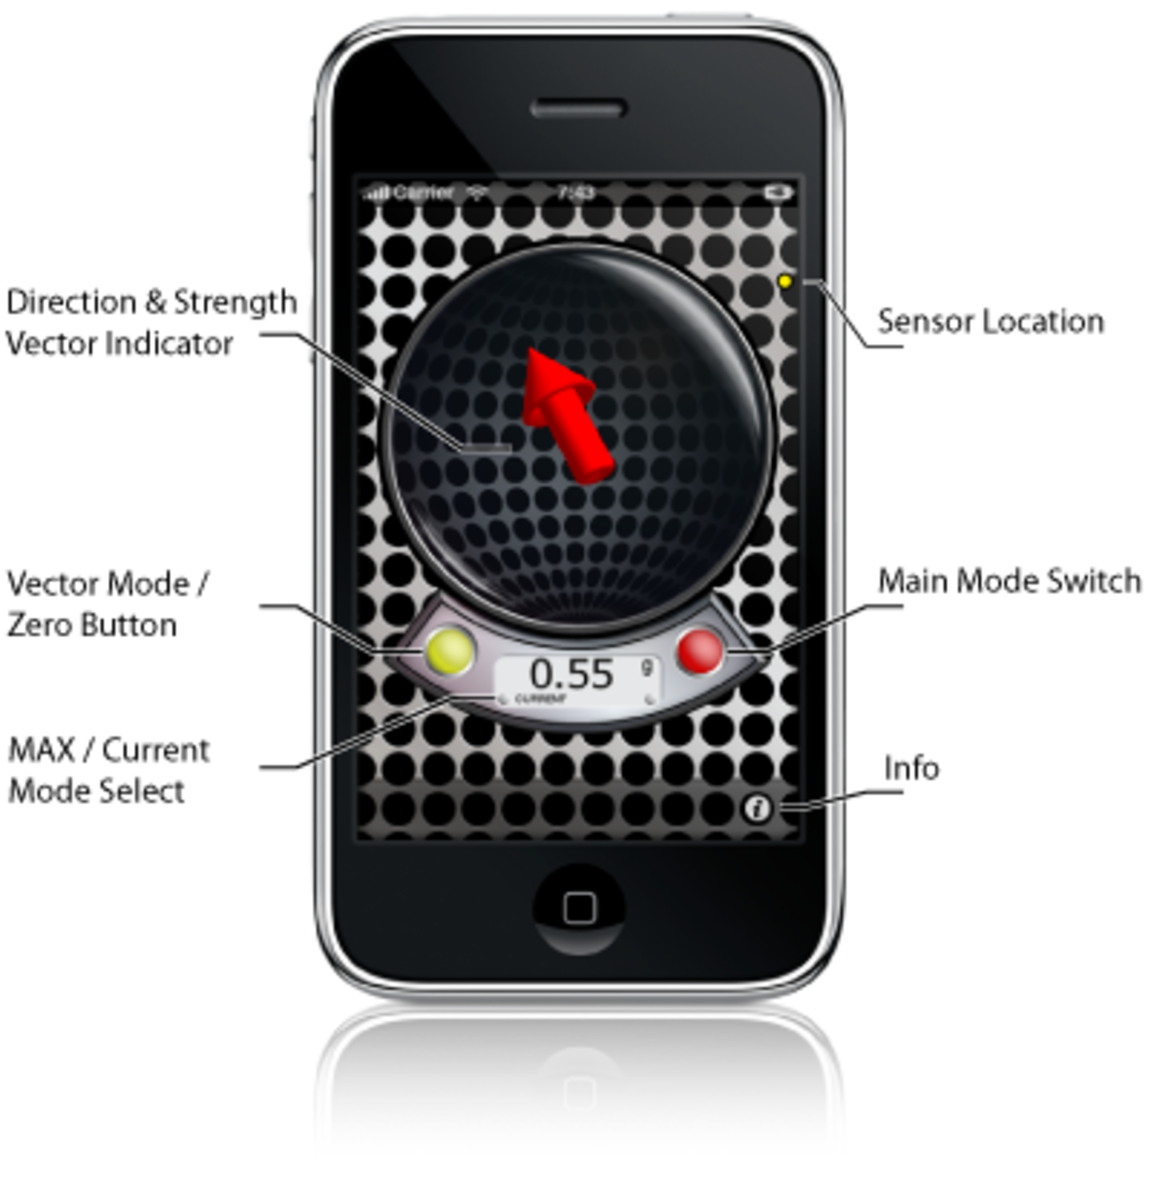 10 Free Accelerometer Apps for iPhone and iPod Touch